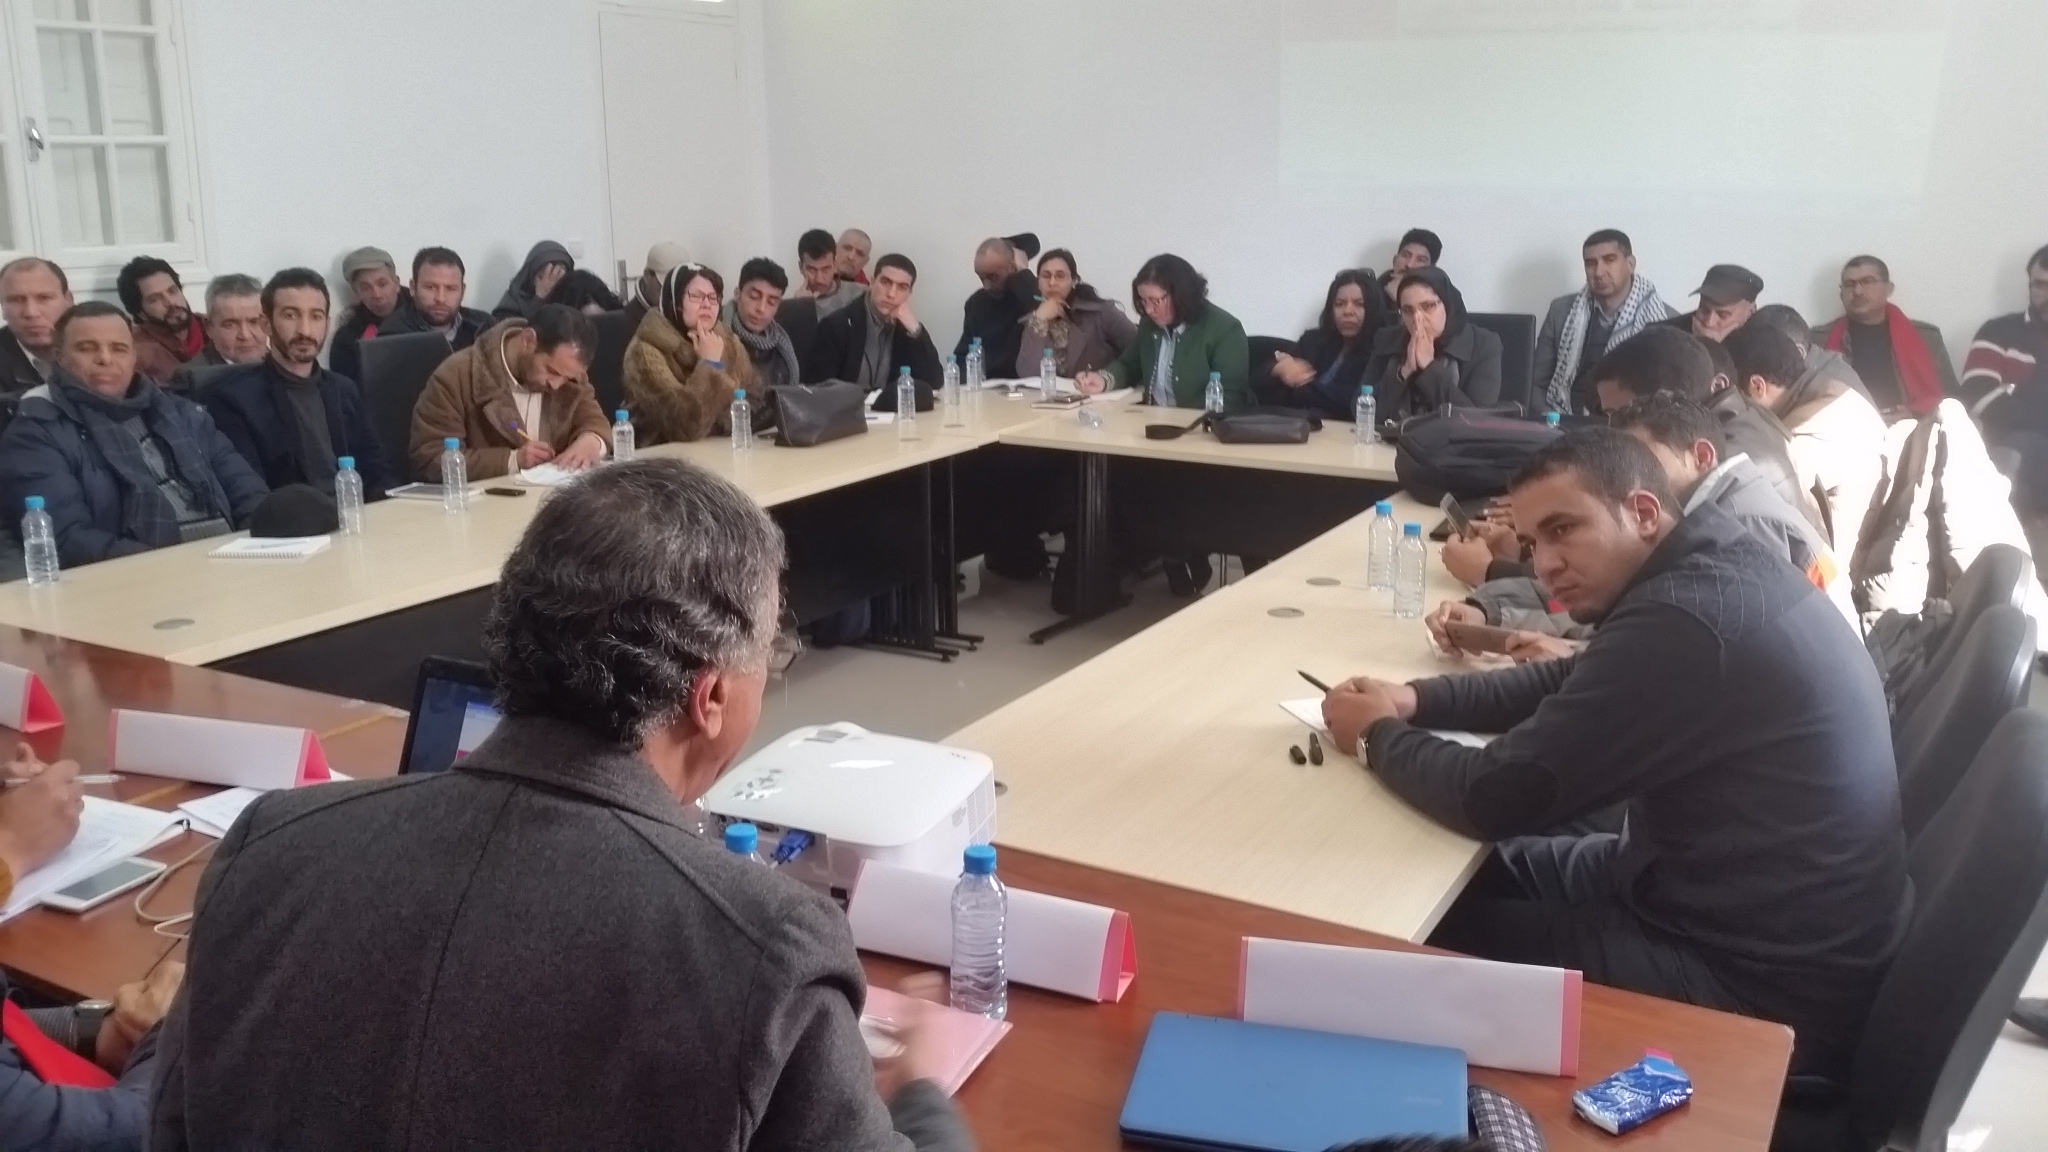 FNE-PHILO-PHOTO-RENCONTRE-NATIONALE-RABAT-30-1-2017 (11)